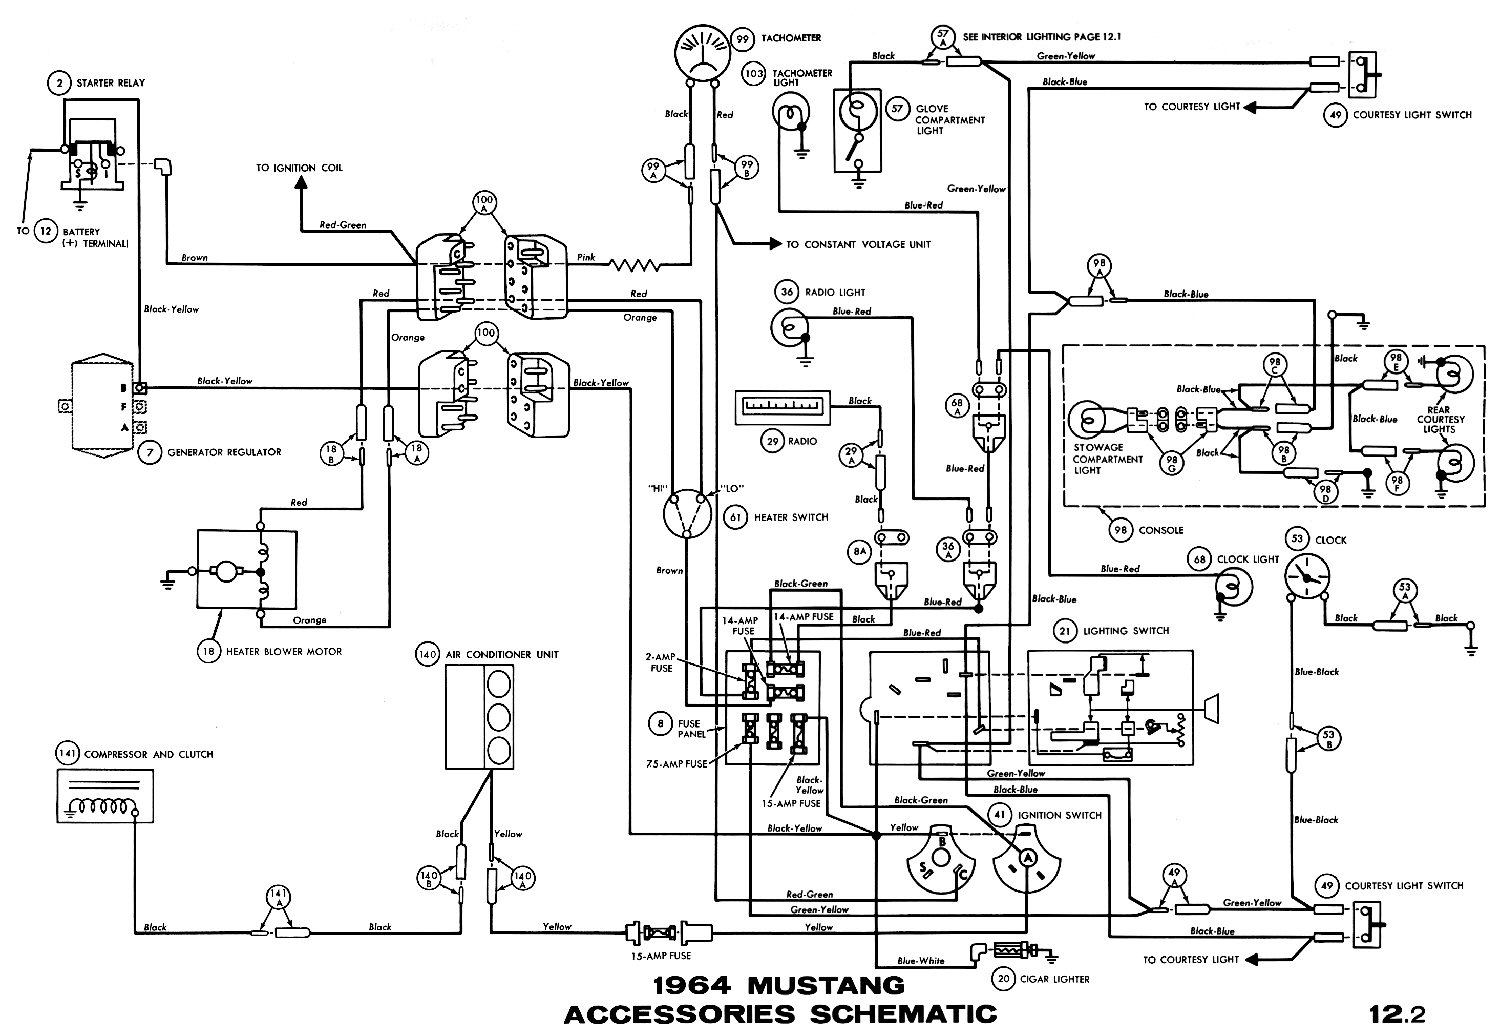 1964m 2015 mustang wiring diagram schematic mustang 2015 \u2022 free wiring 1965 ford mustang wiring diagrams at gsmx.co